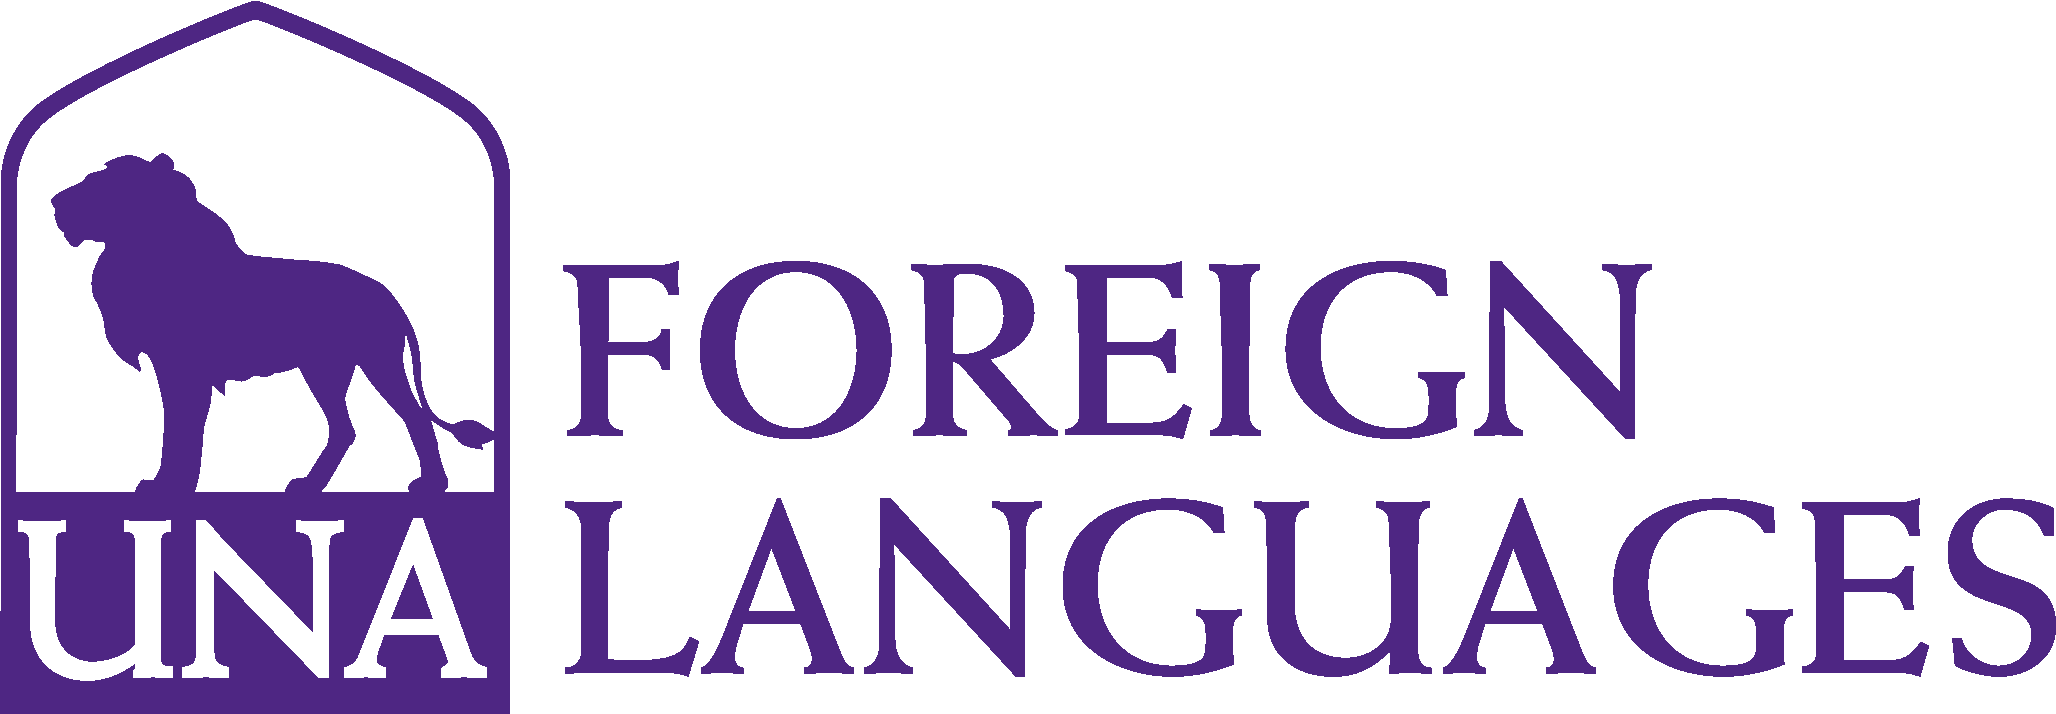 College of Arts and Sciences - Foreign Languages Logo - Purple - Version 3